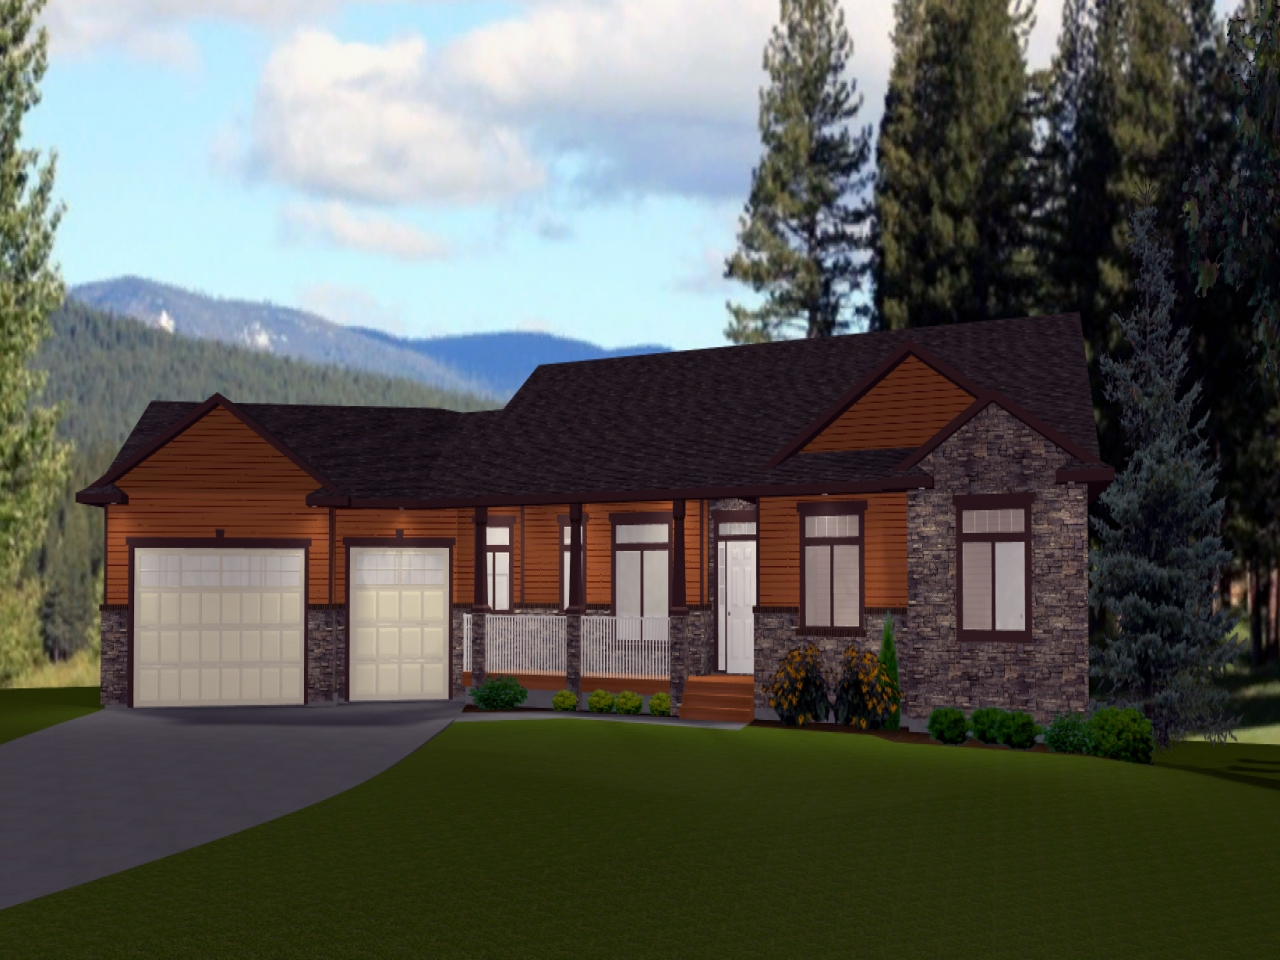 Rectangular house plans ranch style ranch style house - What is a ranch style home ...